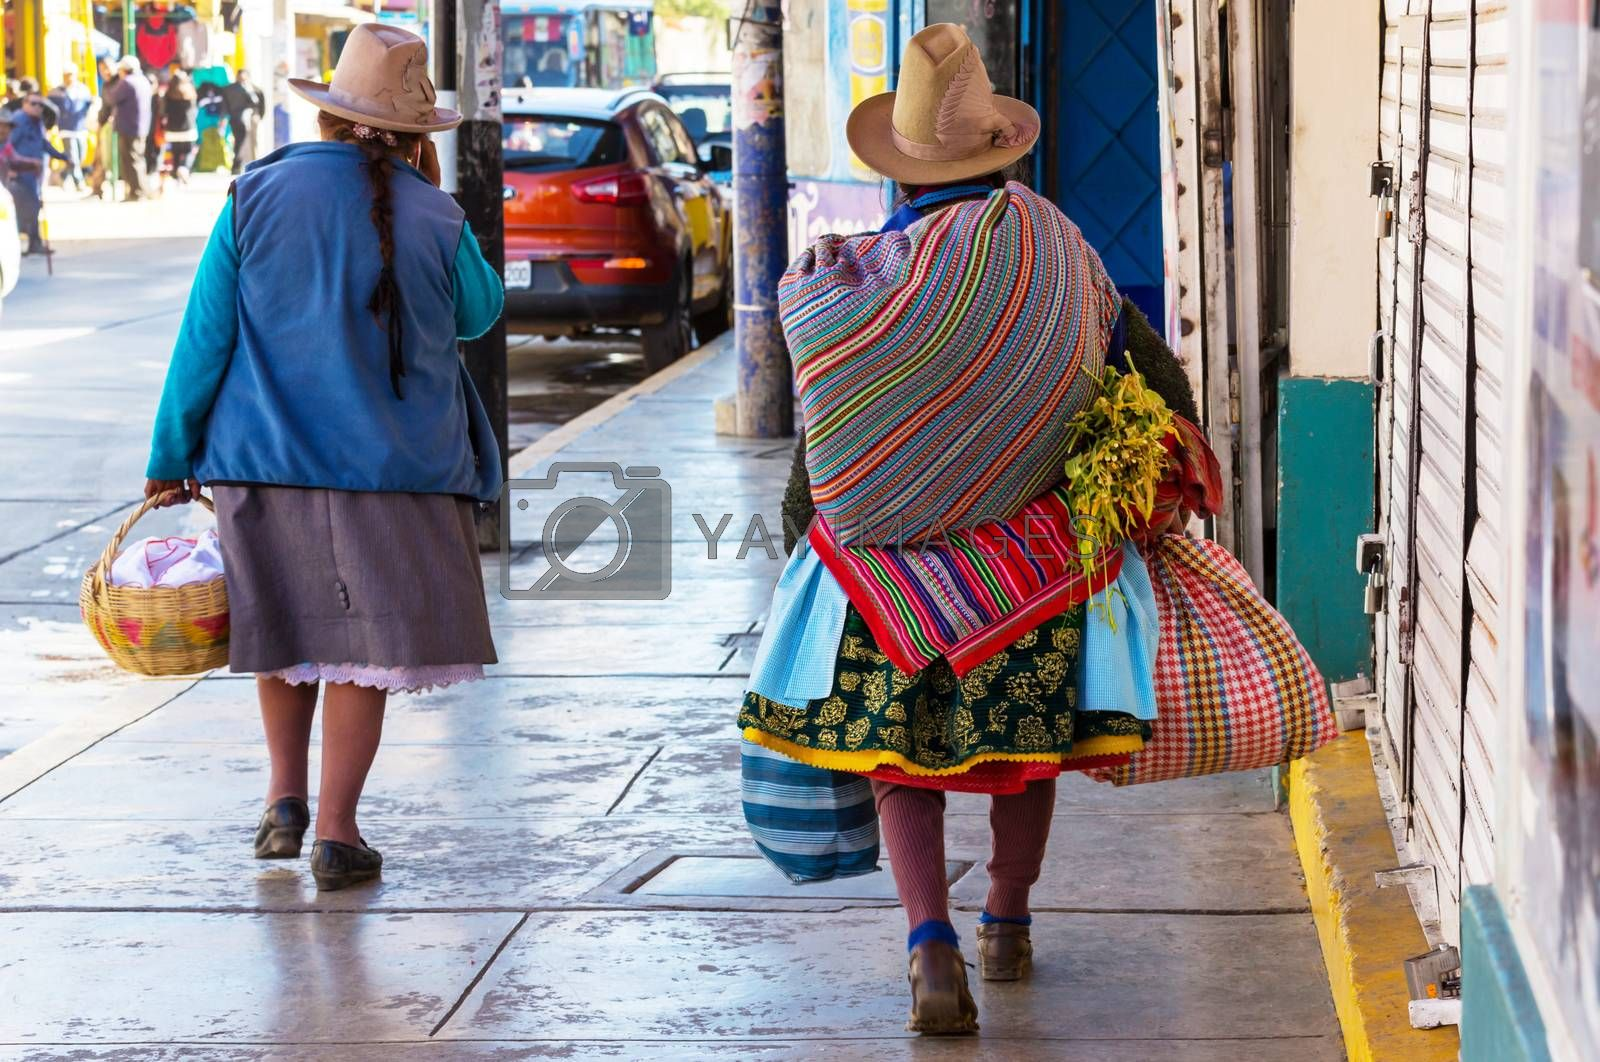 Peruvian people in city street